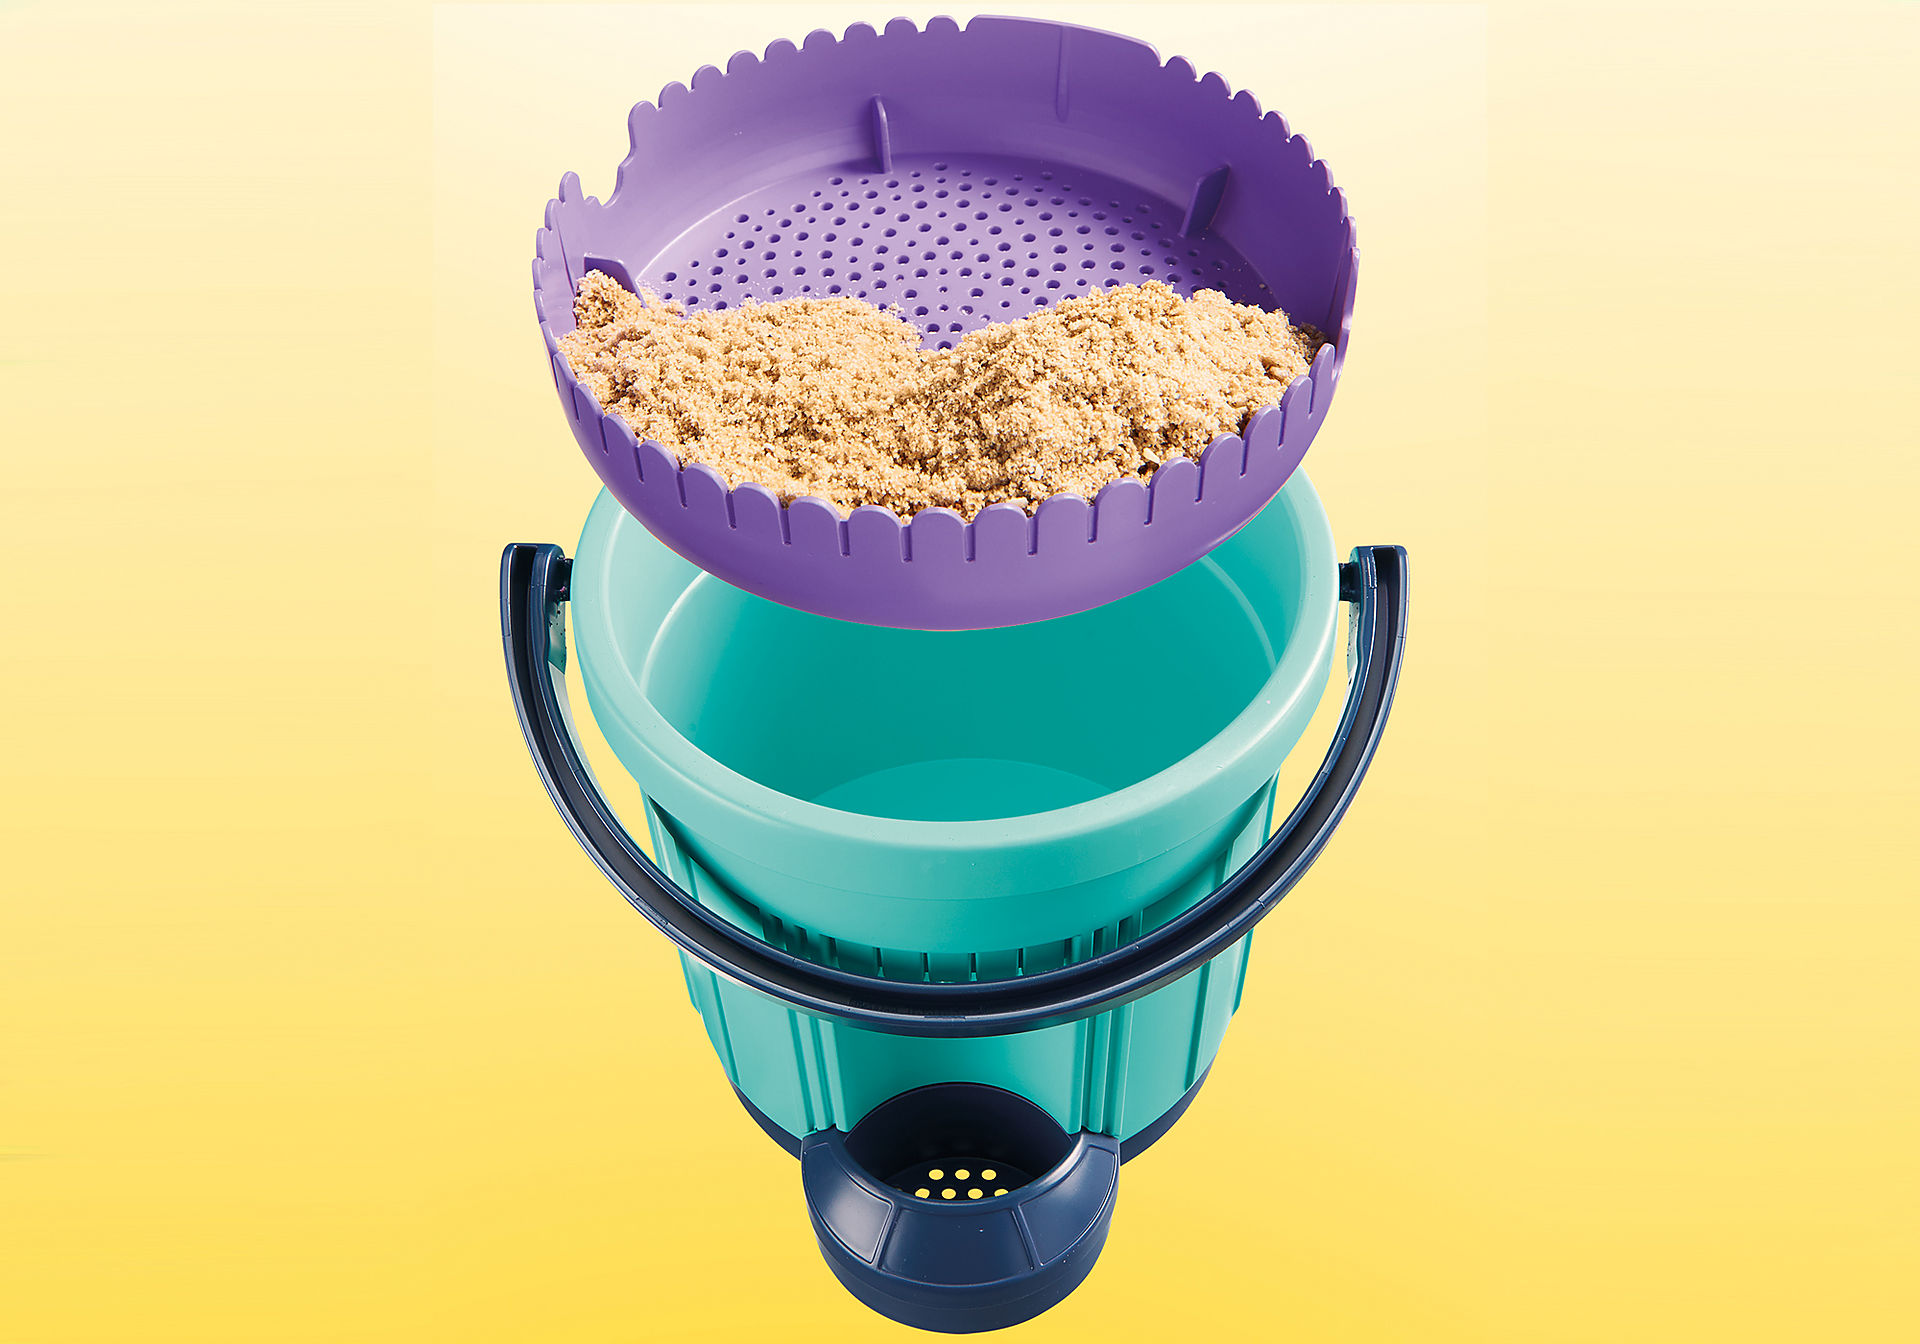 70339 Bakery Sand Bucket zoom image4